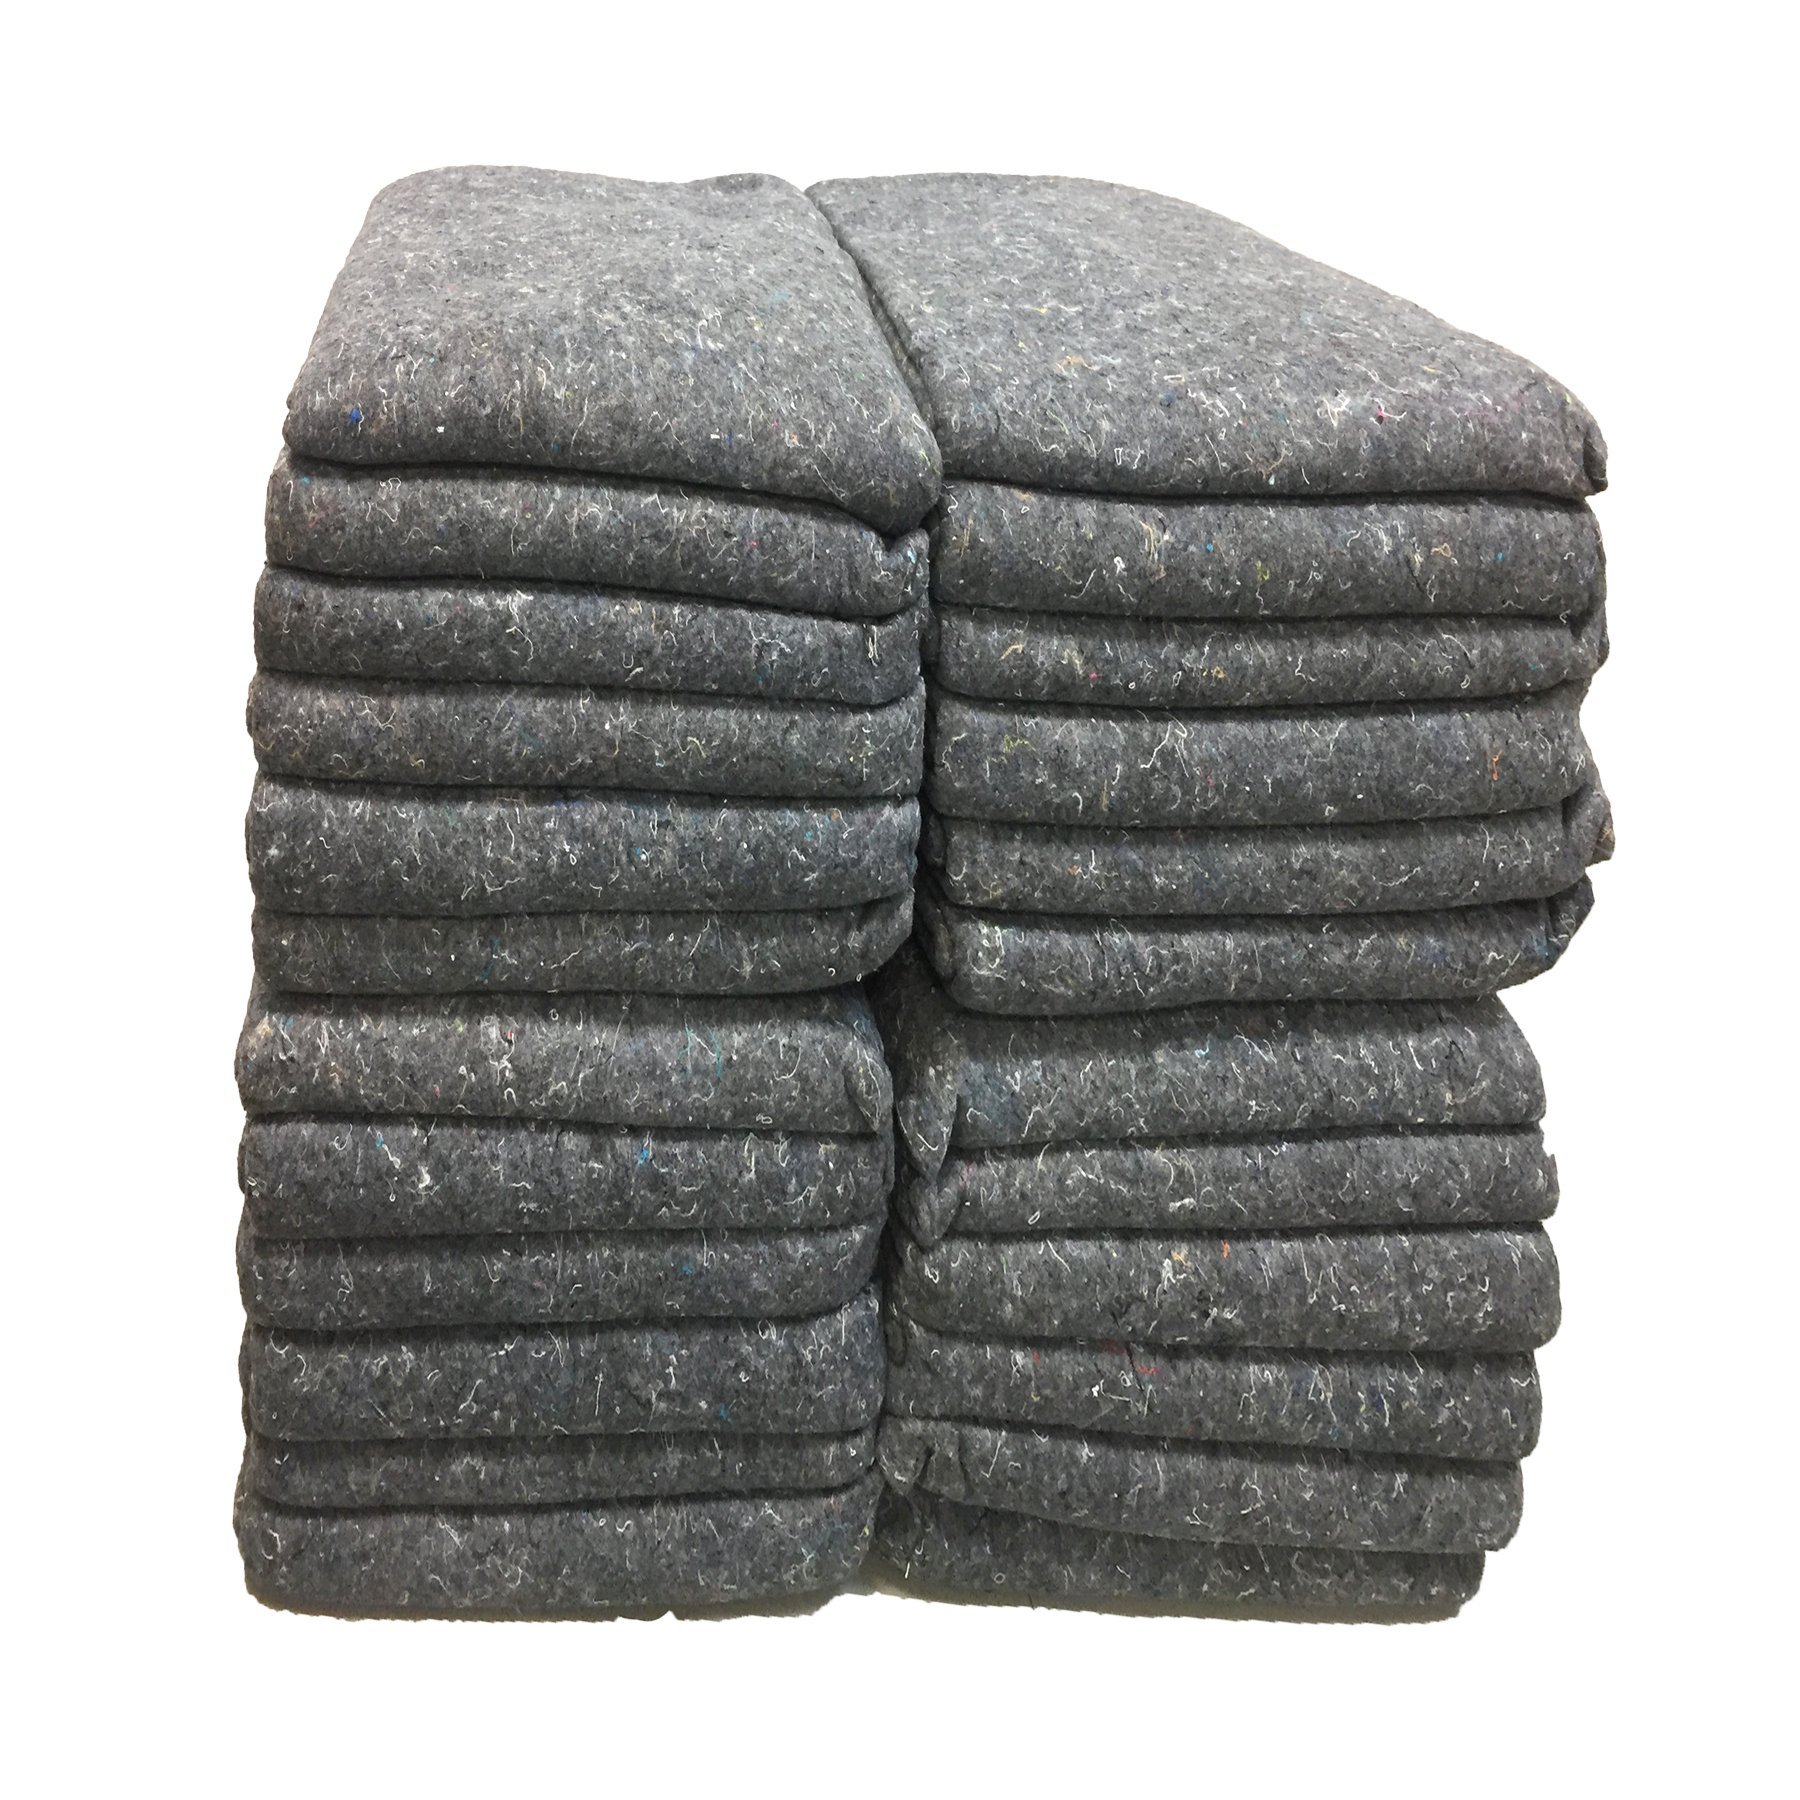 UBOXES Moving Blankets Professional Quality Textile Skins 54'' x 72'' Pads, Grey (24-Pack)